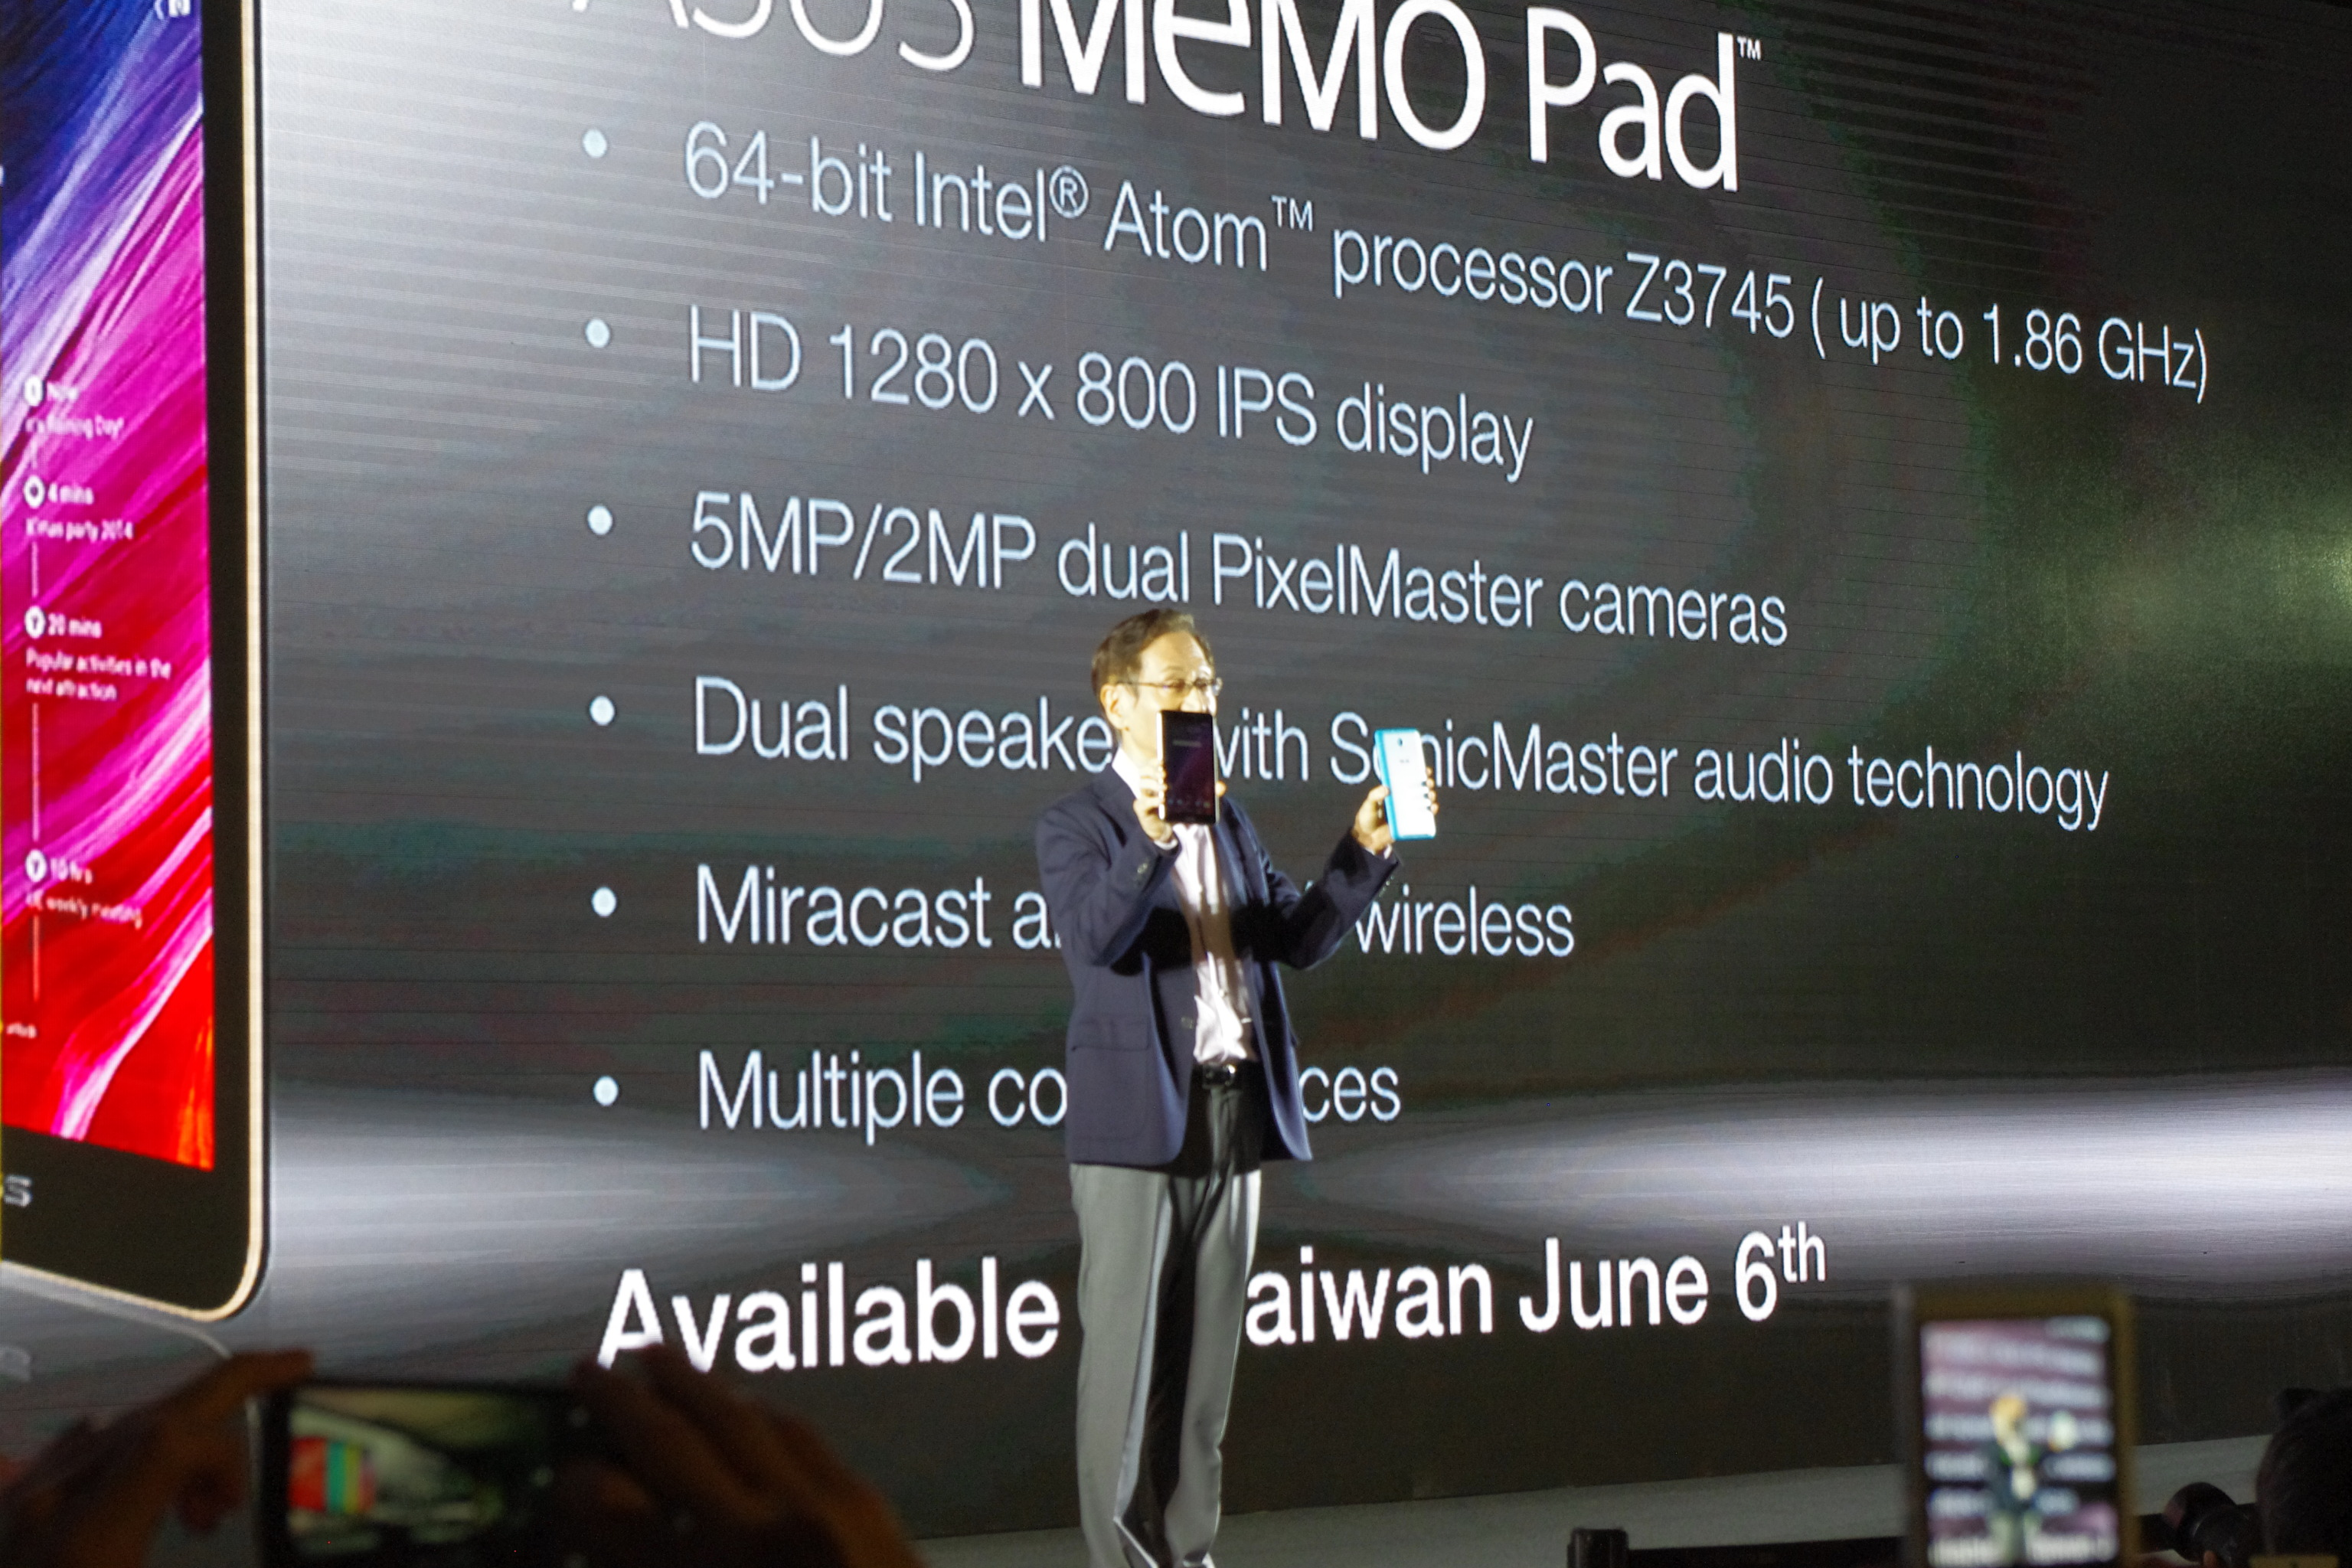 Computex 2014: All new Intel Atom based Fonepad 8, MeMO Pad